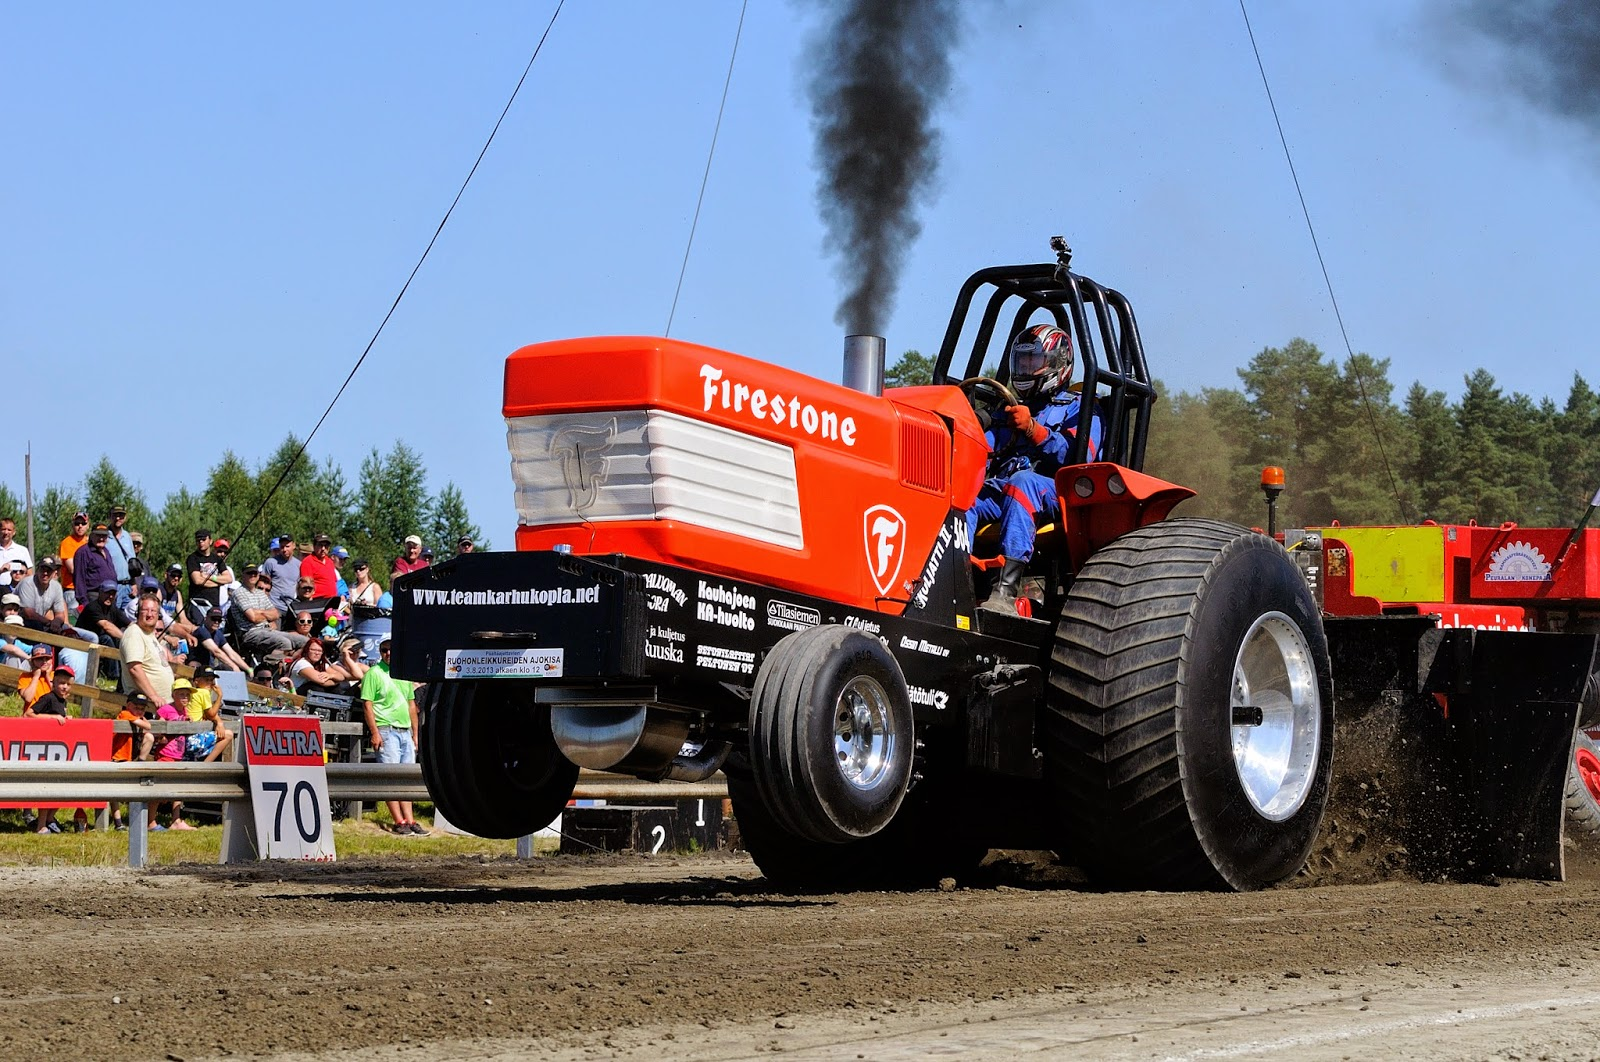 Tractor Pull Tractors : Tractor pulling news pullingworld